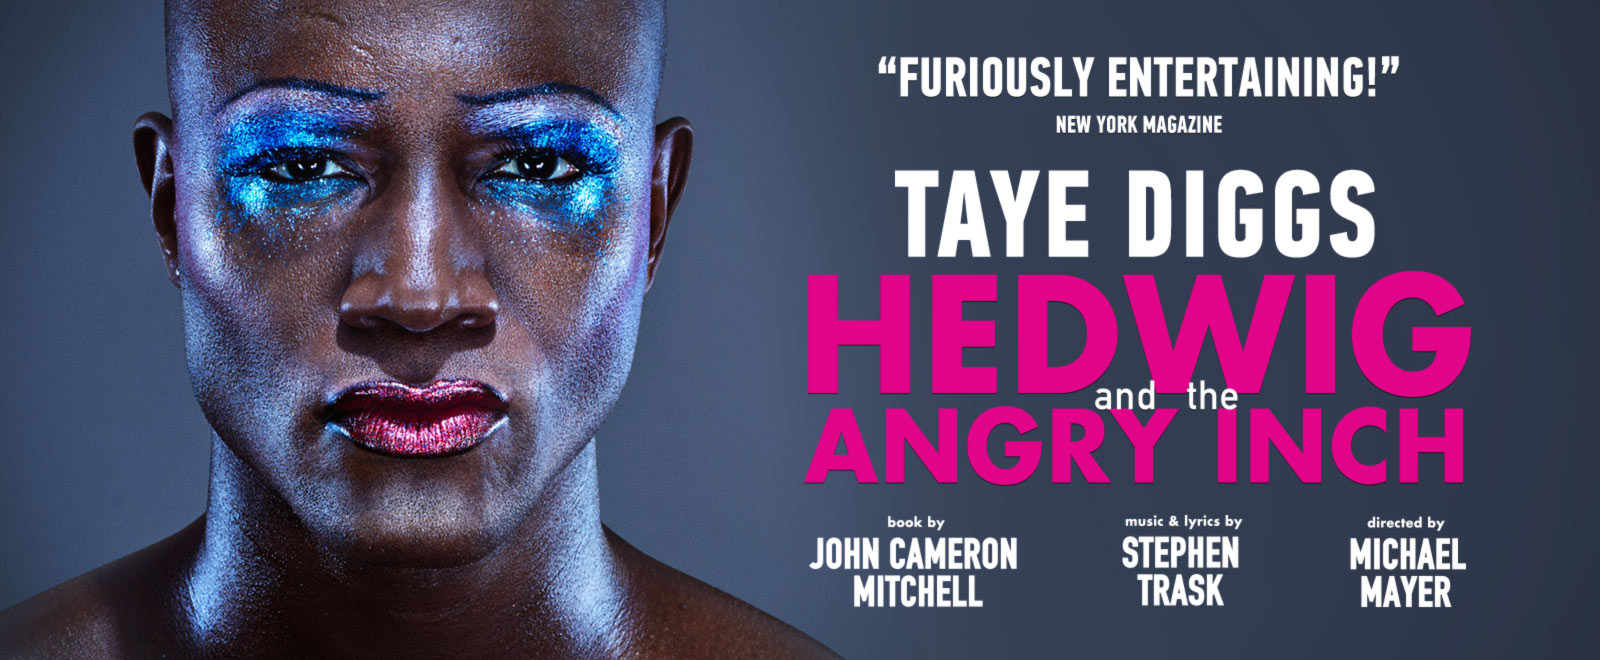 The Best Rock Musical Ever! | Taye Diggs | Hedwig and the Angry Inch